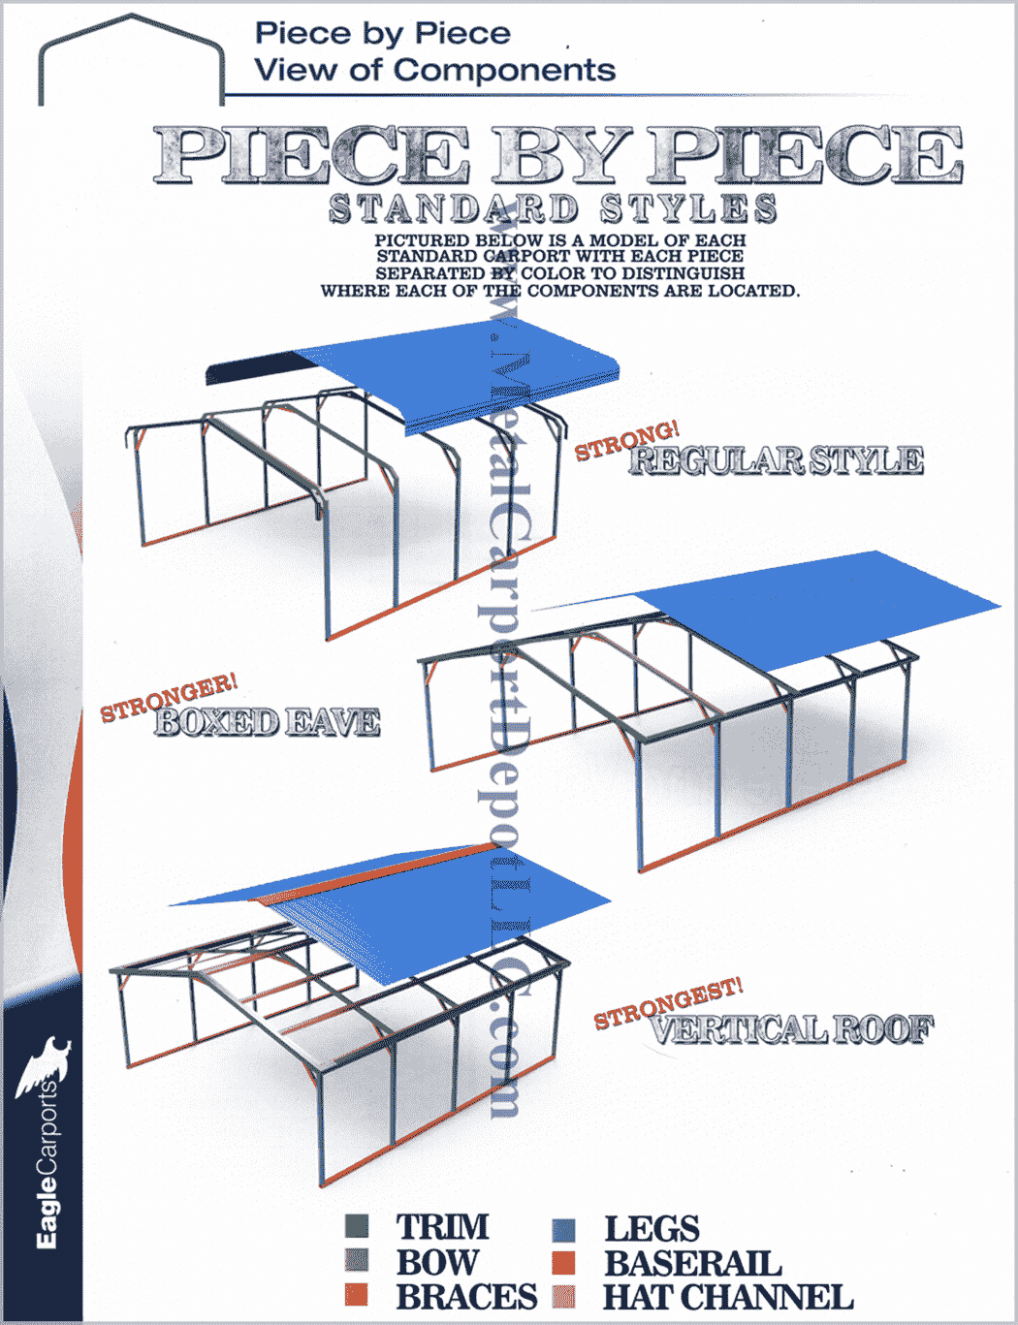 Answers To Faq About Metal Carports Metal Buildings How To Make A Steel Carport.png